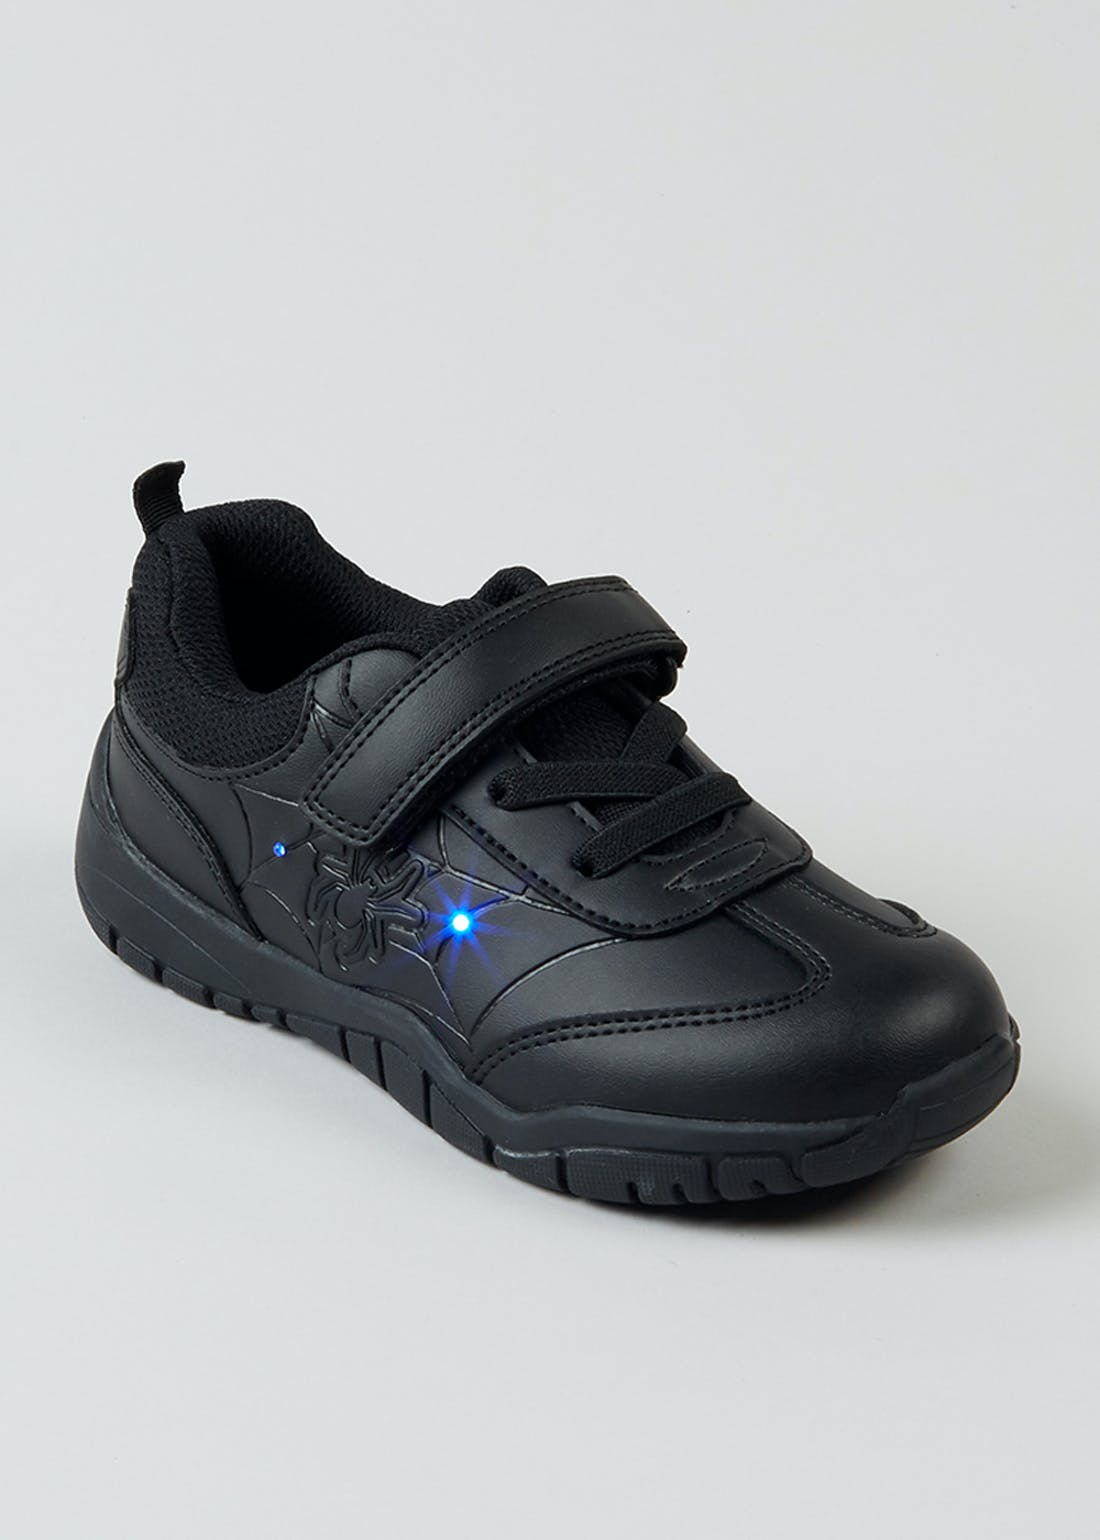 Boys Black Light Up Spider School Shoes (Younger 8-Older 1)